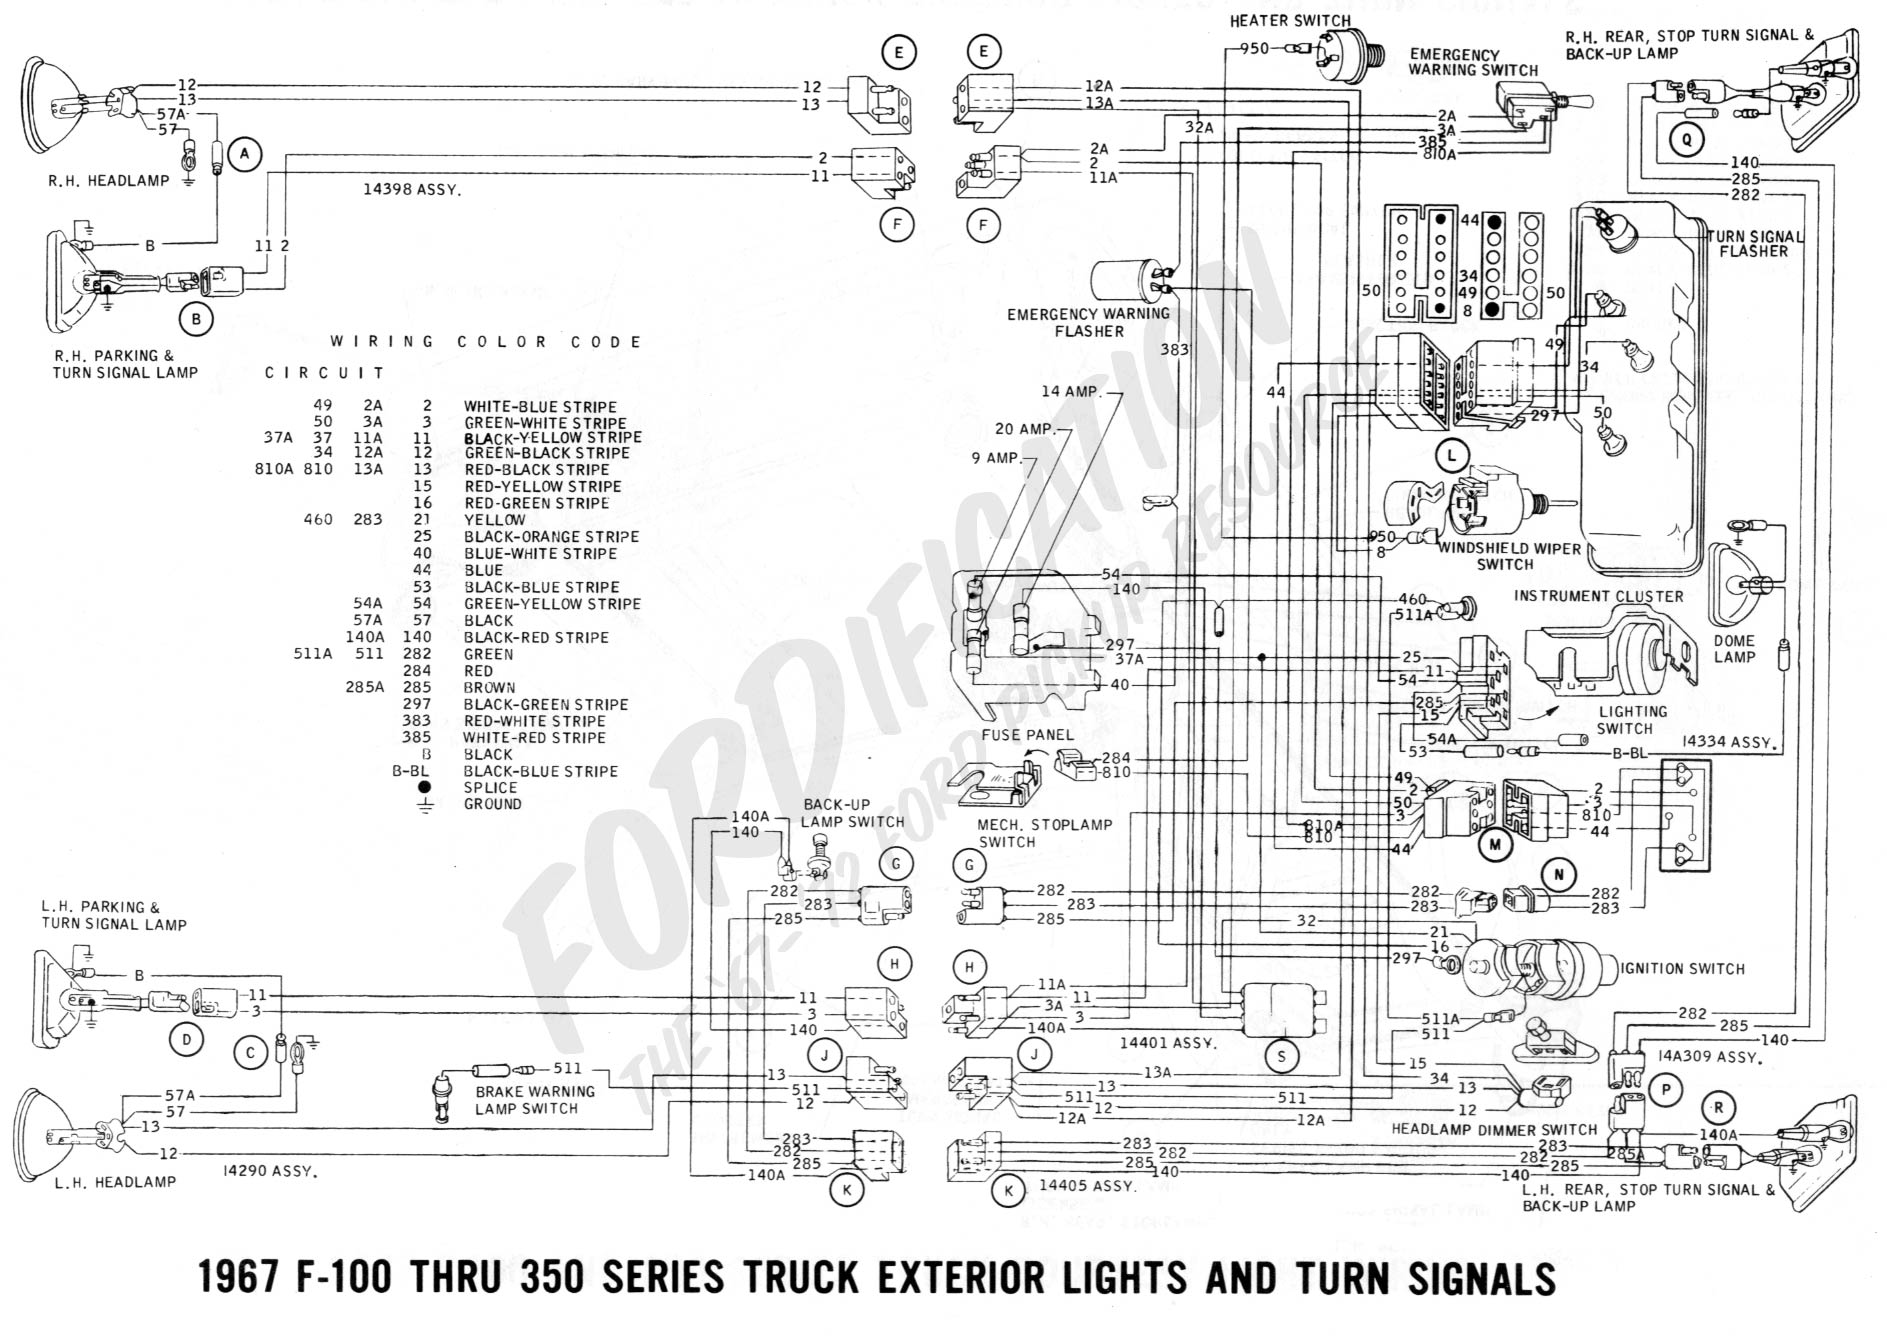 1989 Mustang Dash Wiring Diagram Library 89 F150 Ford F 250 Turn Signal Data Schema 1968 Starter Solenoid Location 66